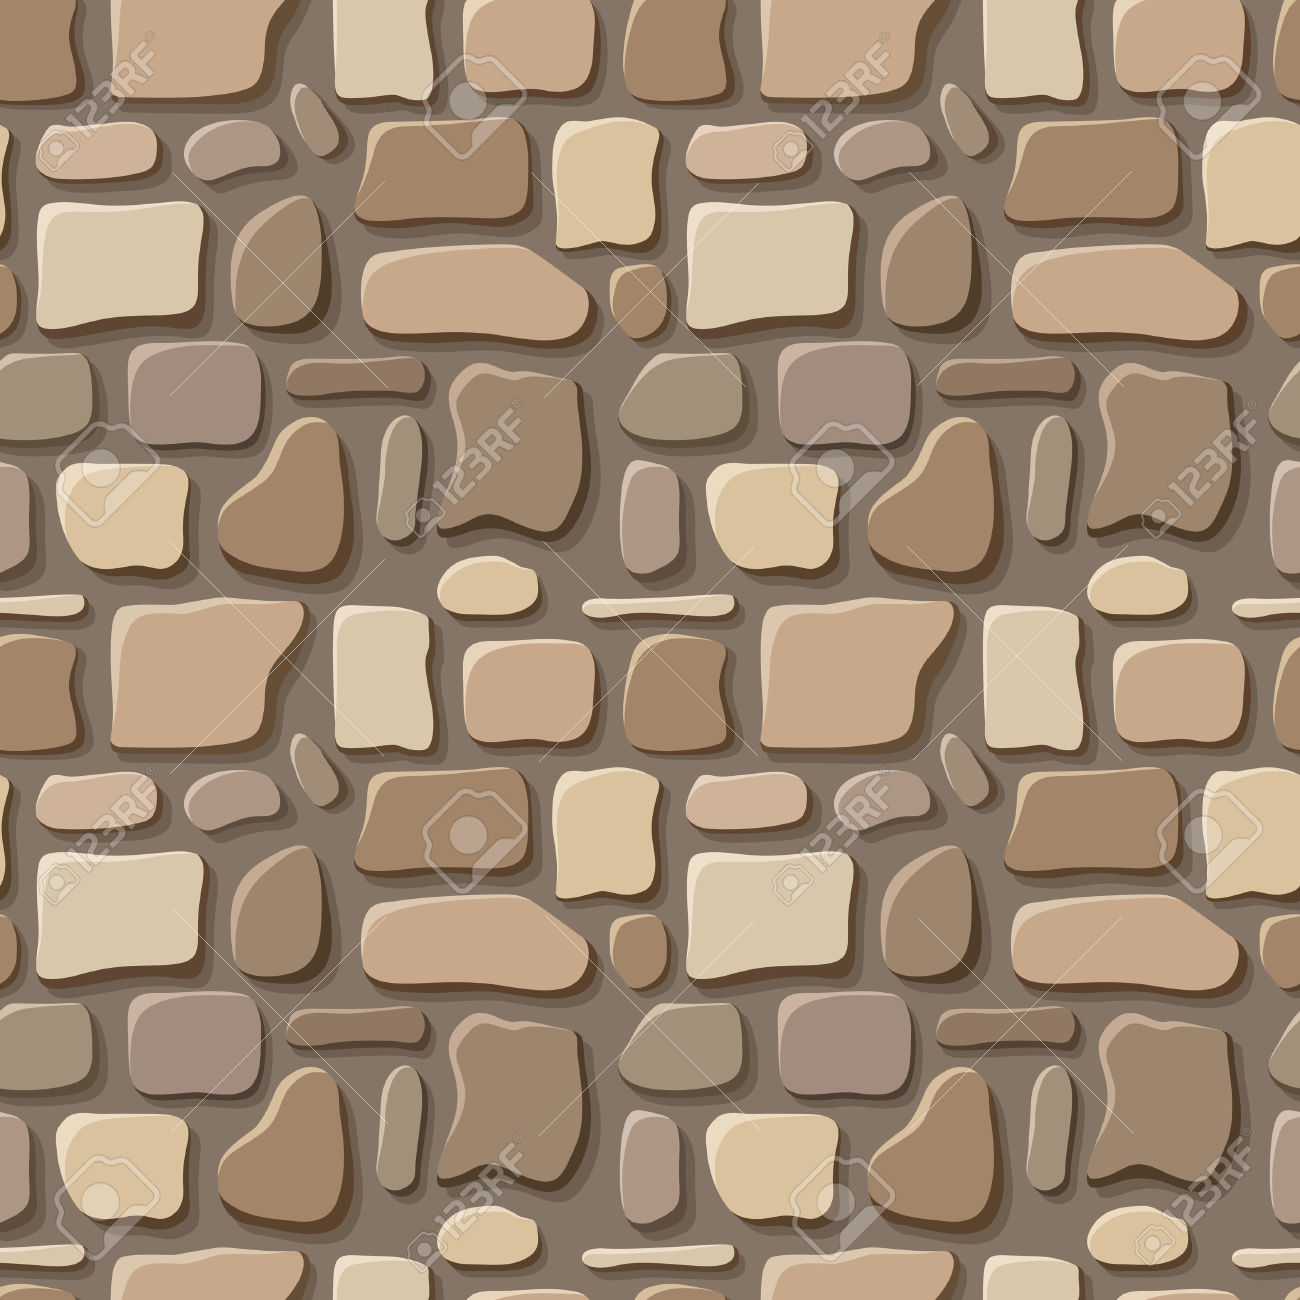 Seamless Texture Of Stone Wall Vector Illustration Royalty Free.